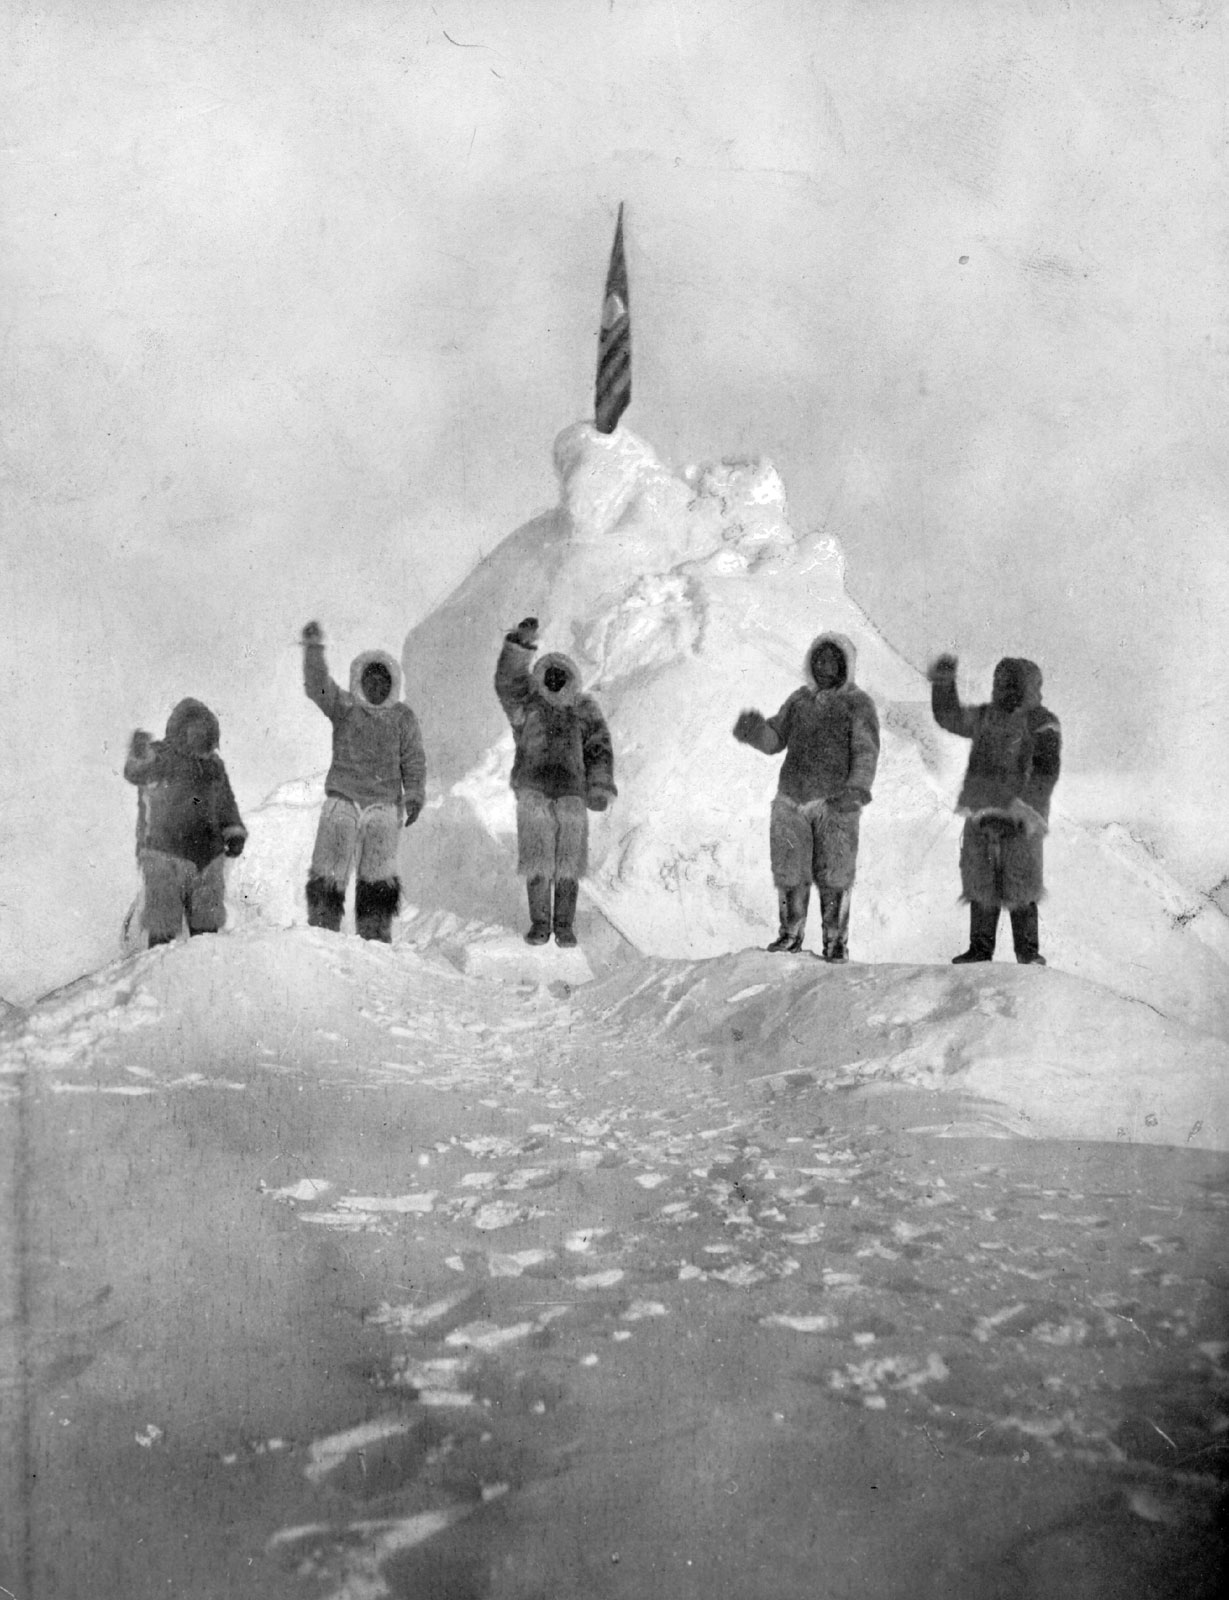 the early life and explorations of robert e peary Northward over the great ice | general james longstreet  on may 6, 1856,  robert e peary, who claimed discovery of the north pole, was born in cresson,   many expeditions, such as the failed ziegler expedition pictured.